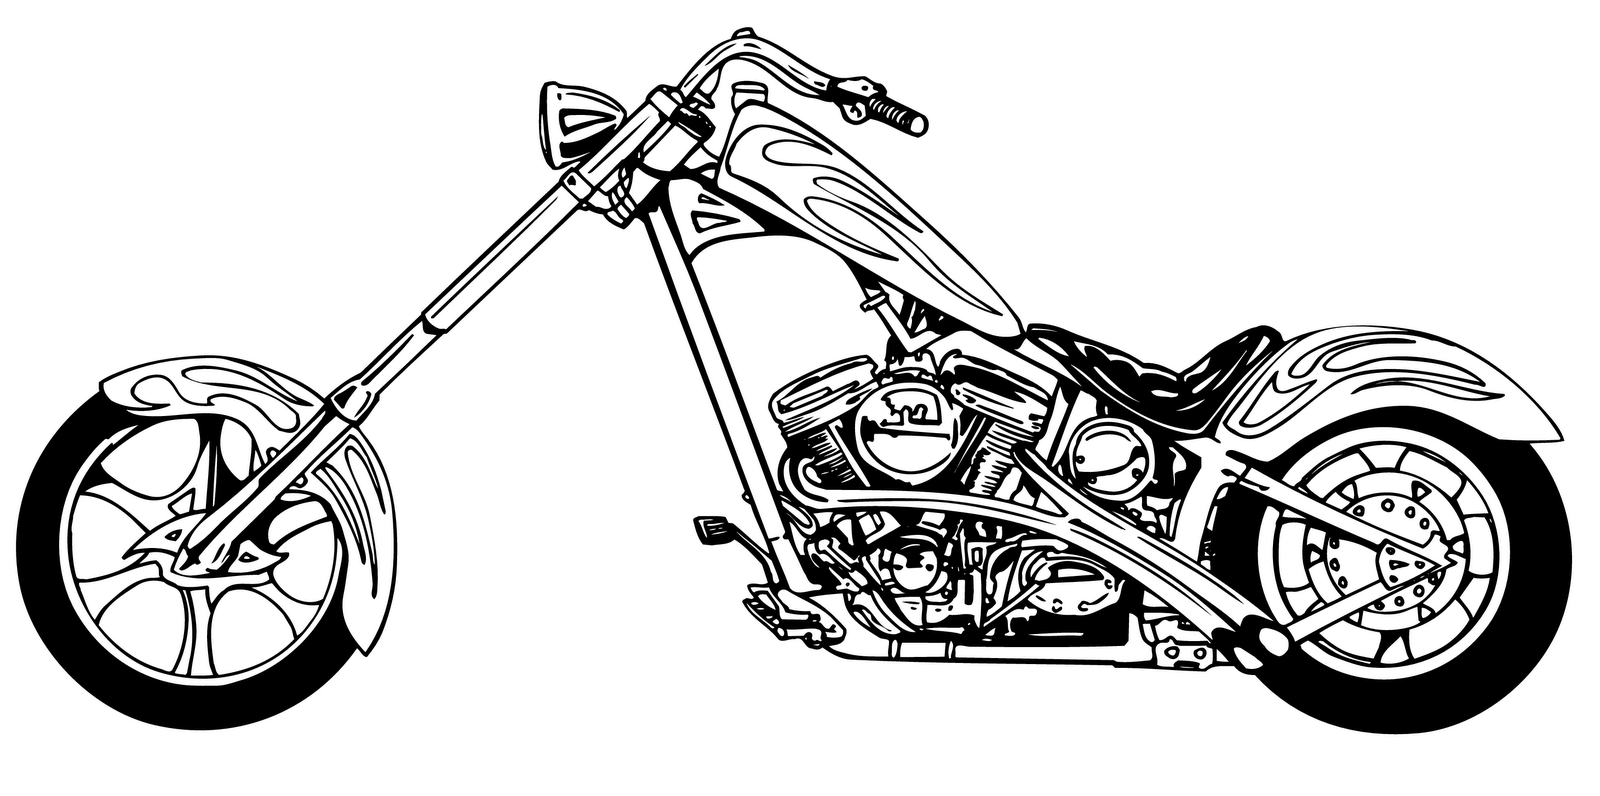 Motorcycle Black And White Free Motorcycle Clipart Clip Art Pictures Graphics 2 Clipartbarn Bike Drawing Motorcycle Clipart Motorcycle Drawing